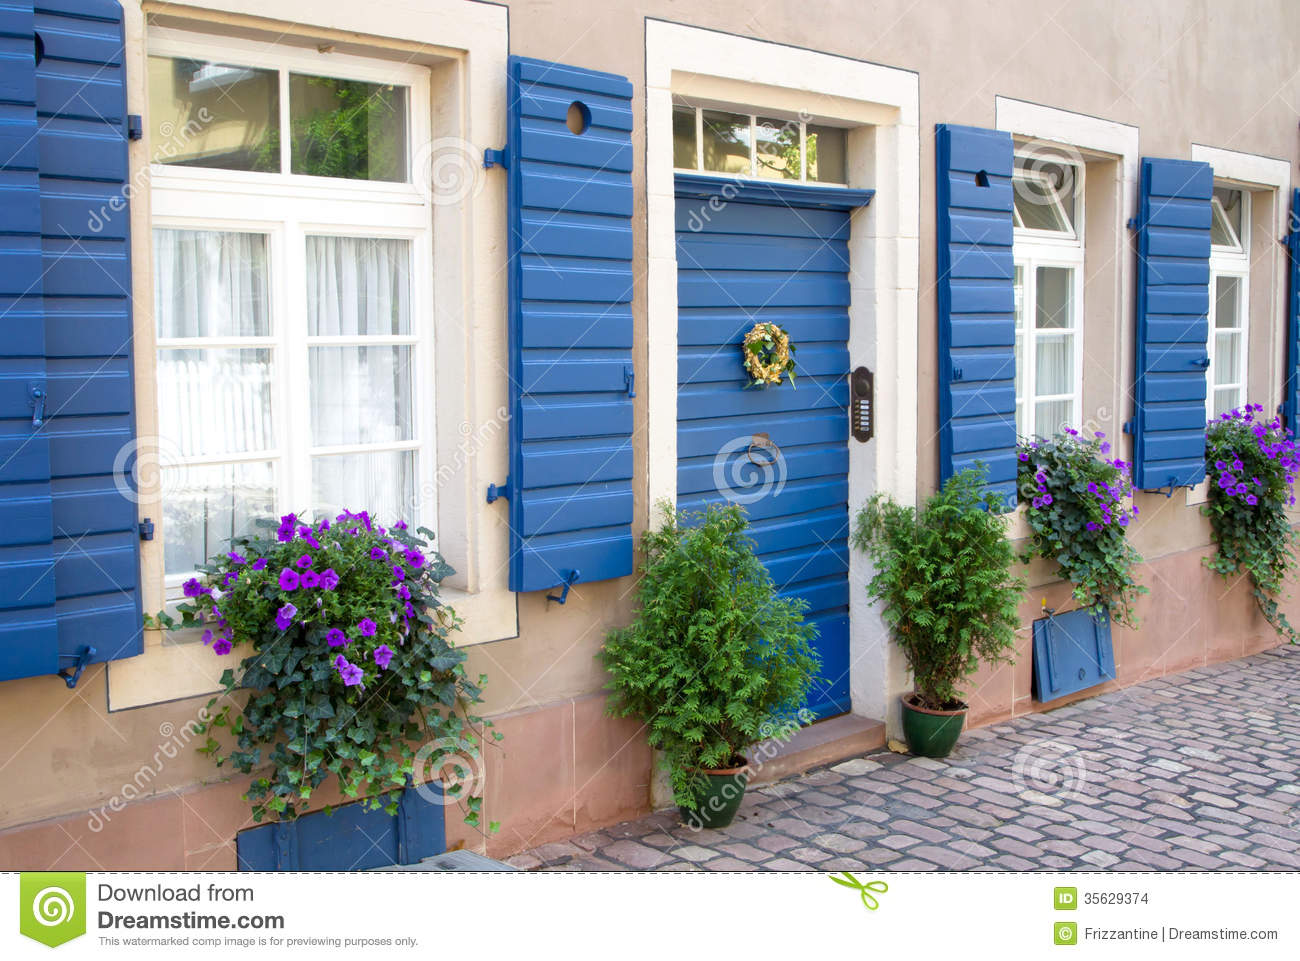 Flowers and plants decorating house exterior stock photo for Outer decoration of house